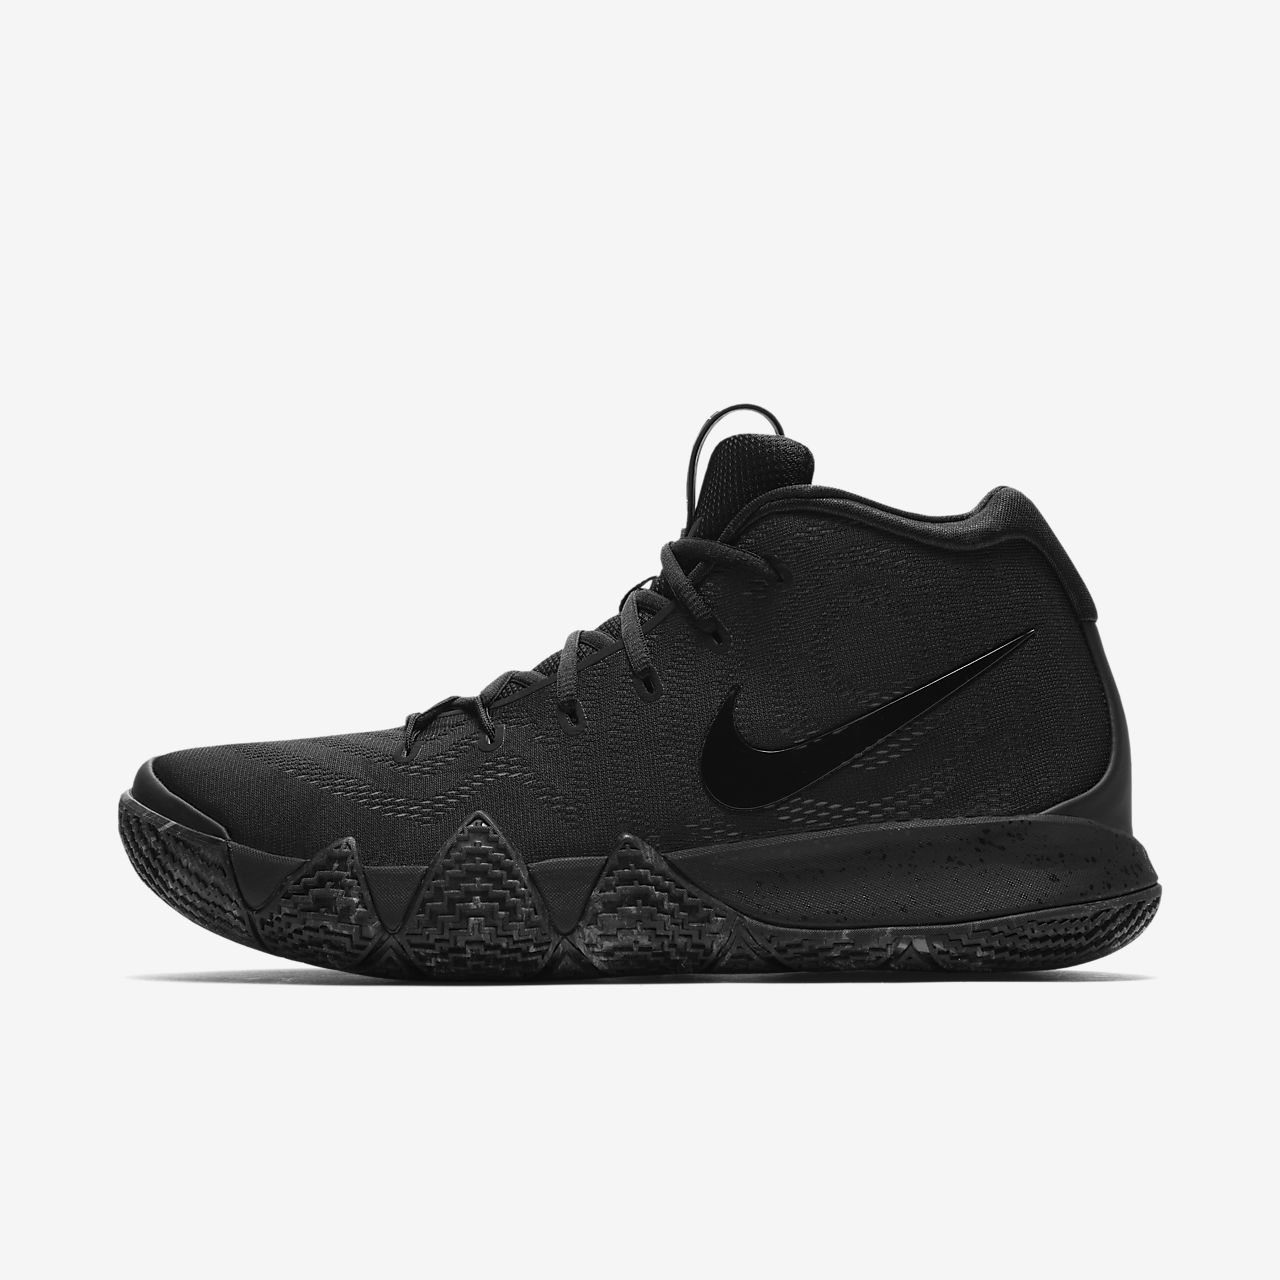 buy popular 25dbe 7966a Basketball Shoe. Kyrie 4